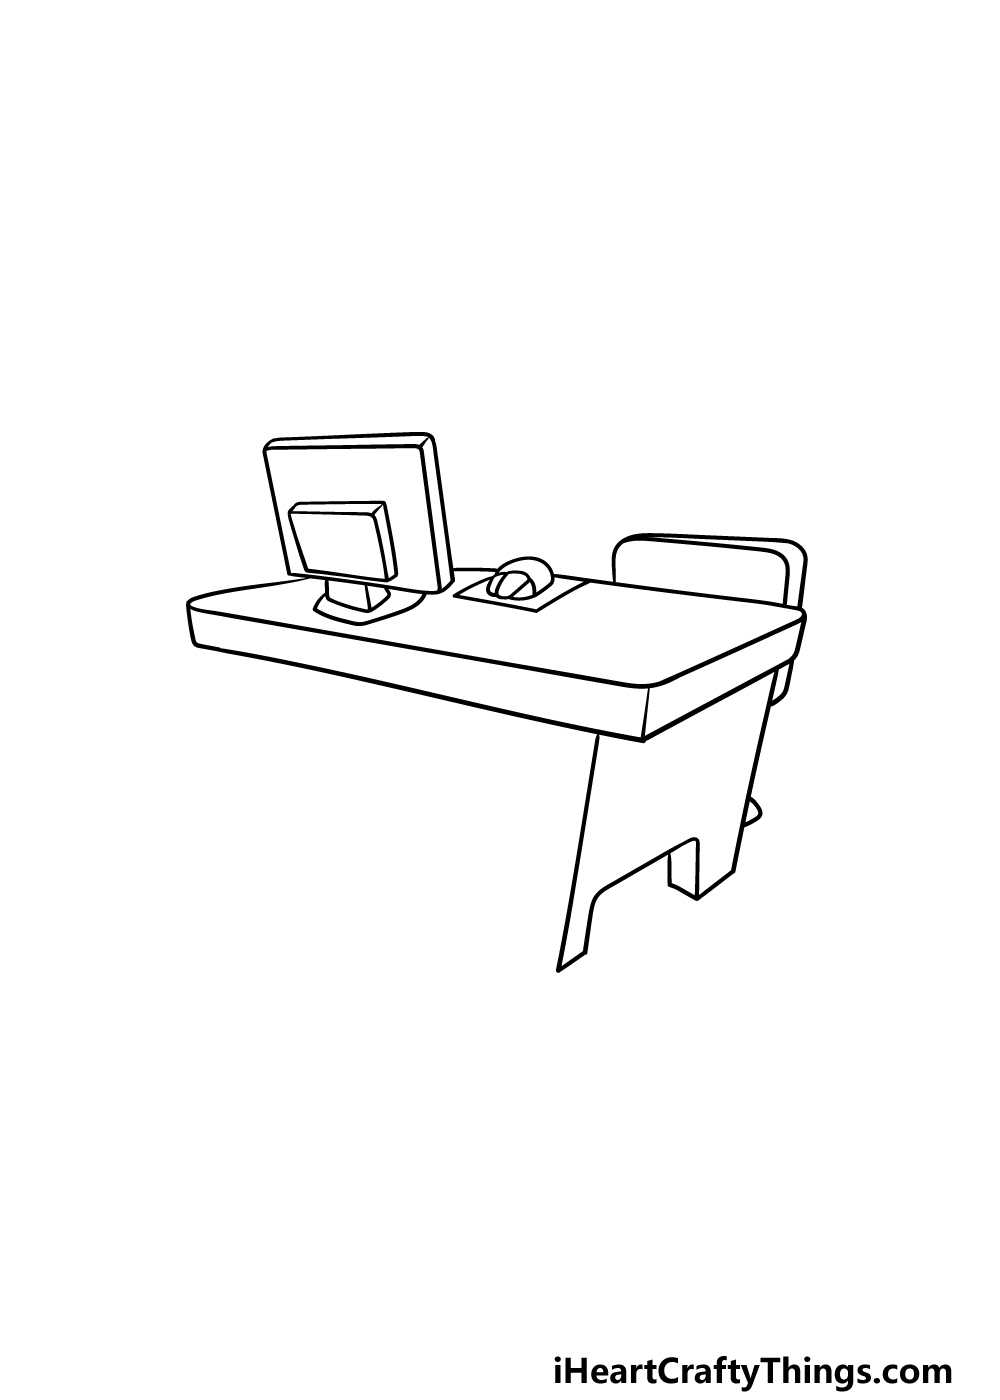 drawing a desk step 4